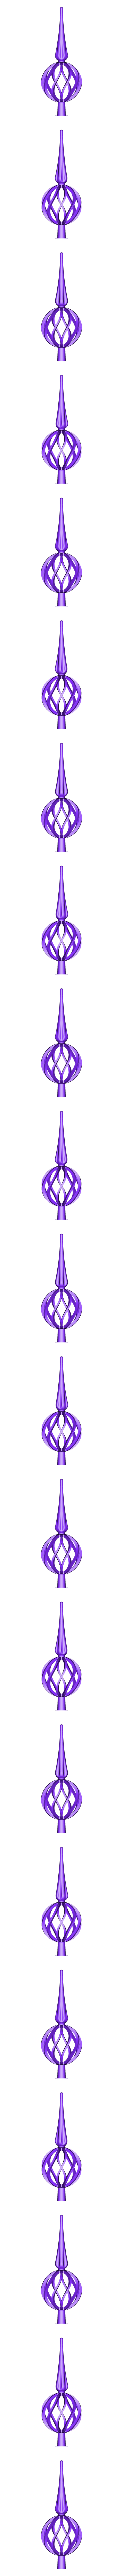 pointe_complete.stl Download free STL file Christmas tree tip • 3D printer template, Luci